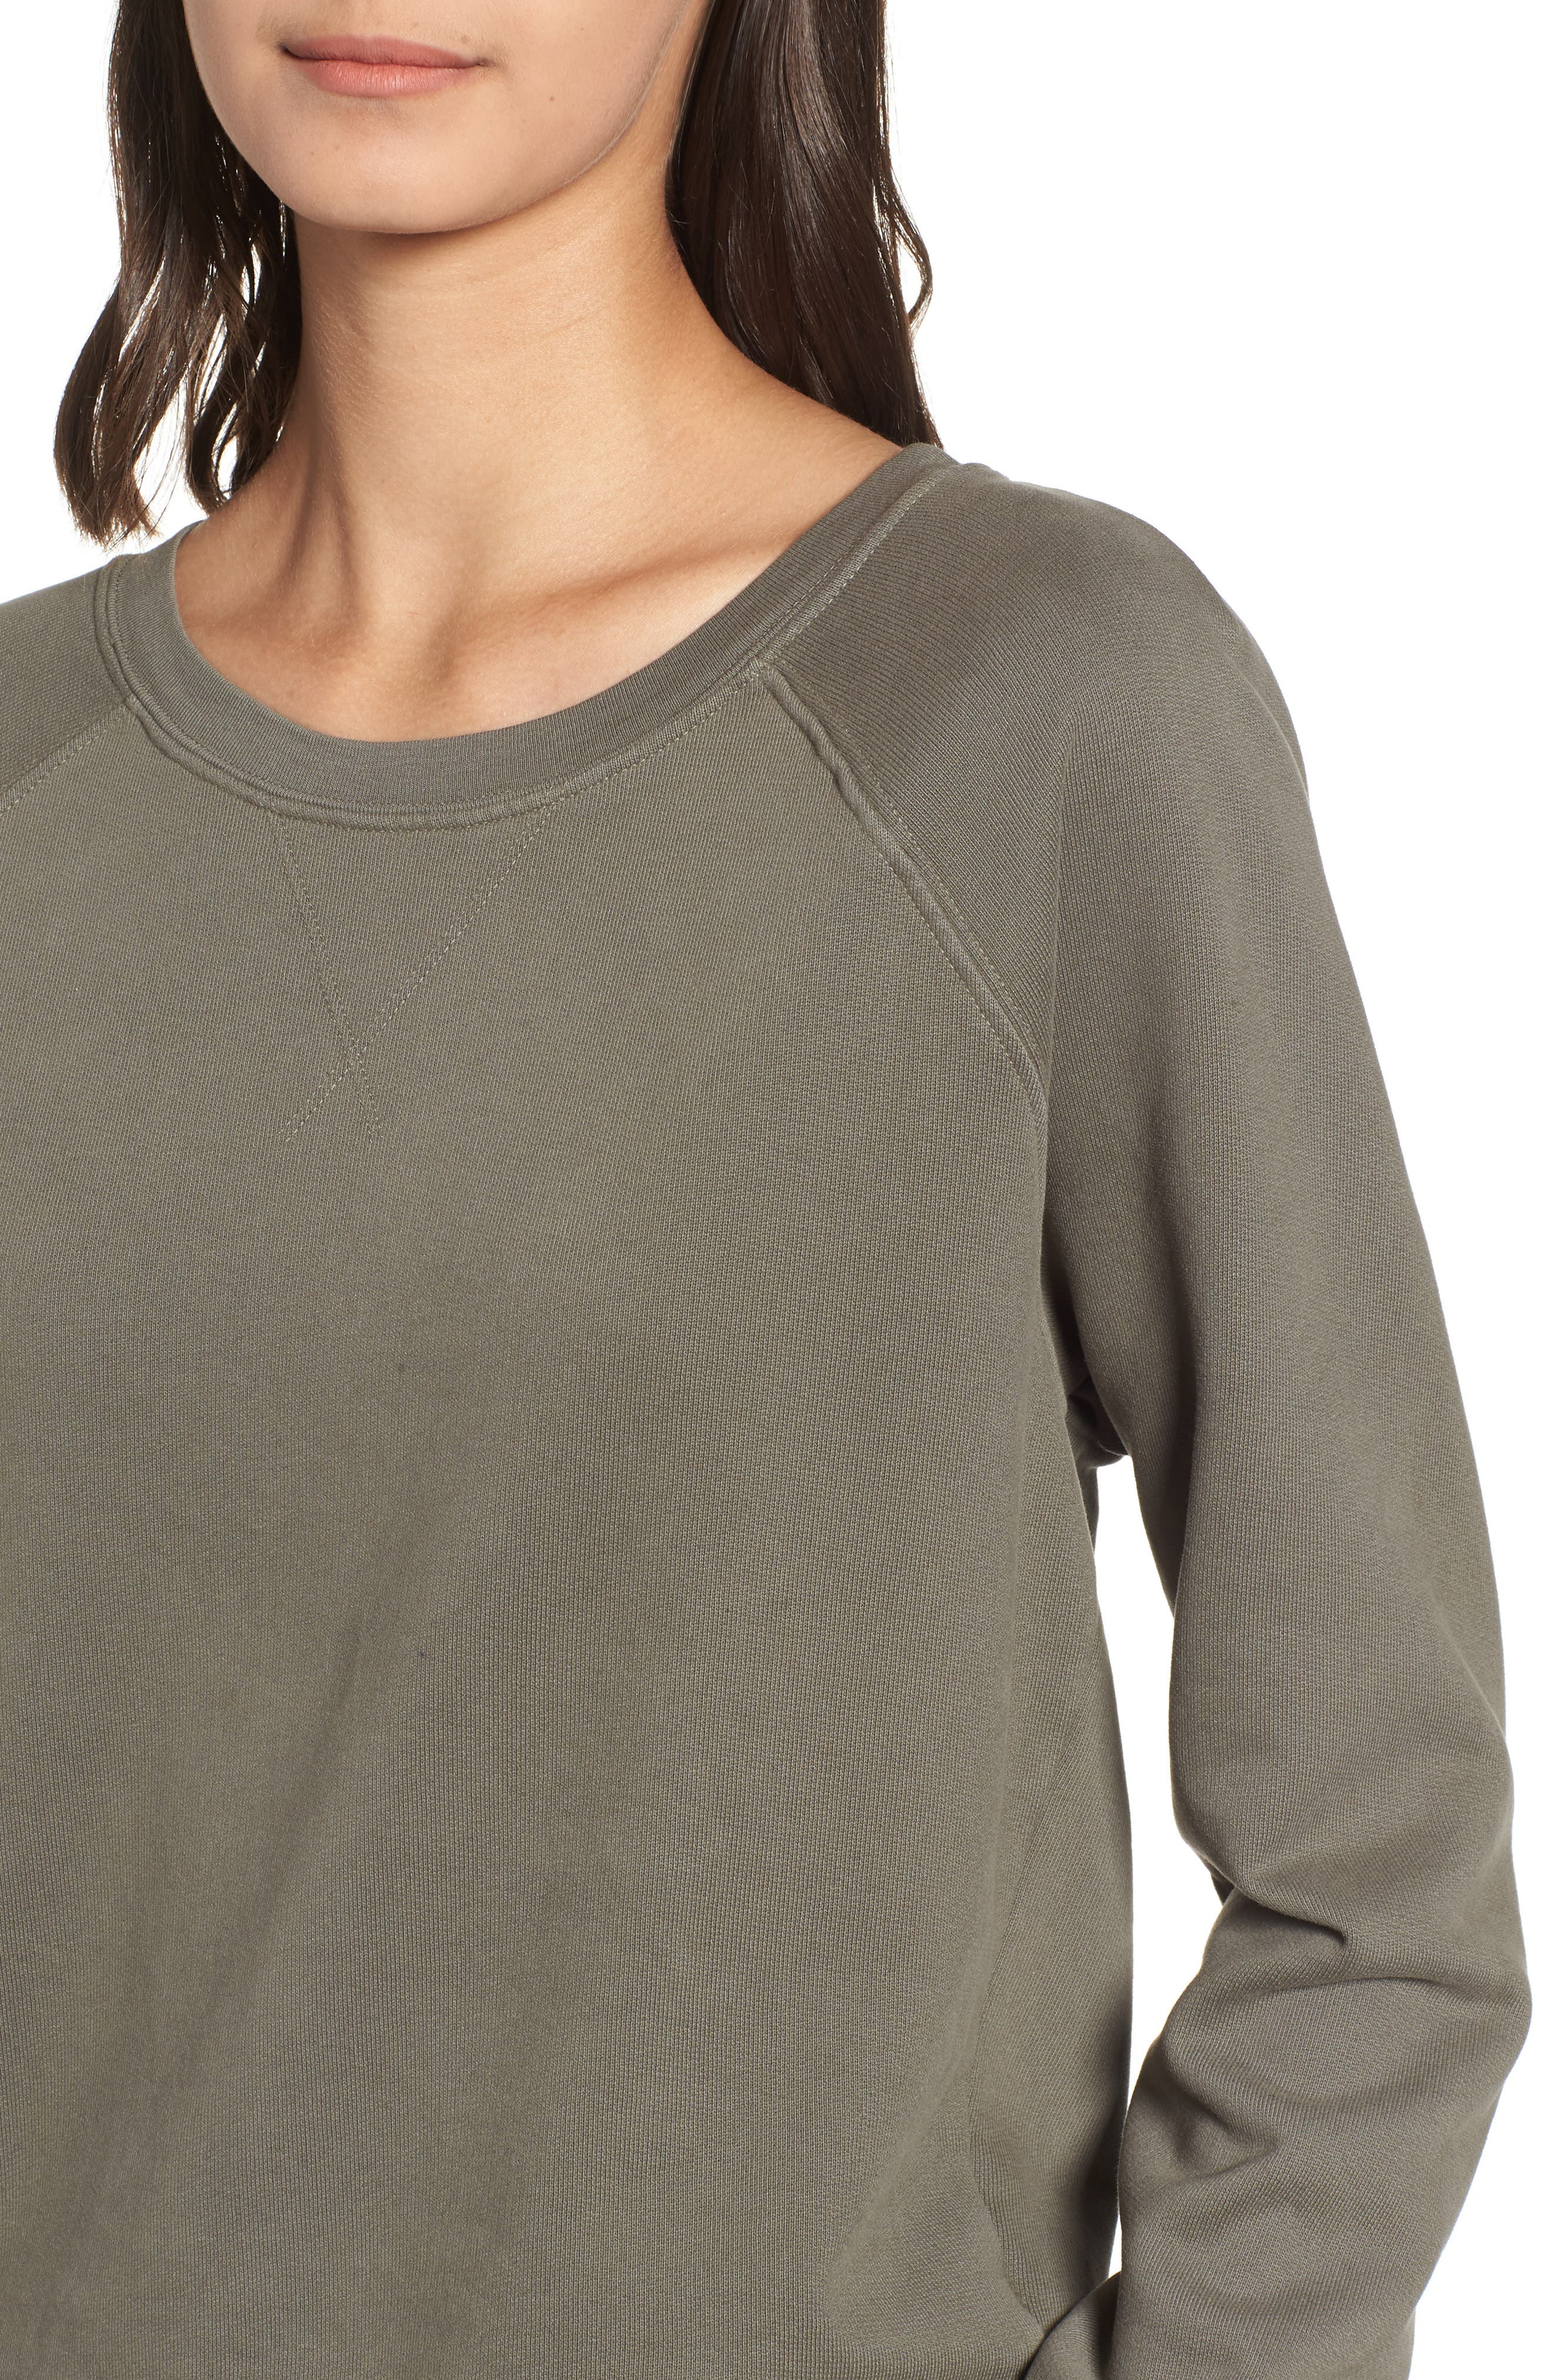 French Terry Sweatshirt,                             Alternate thumbnail 4, color,                             300